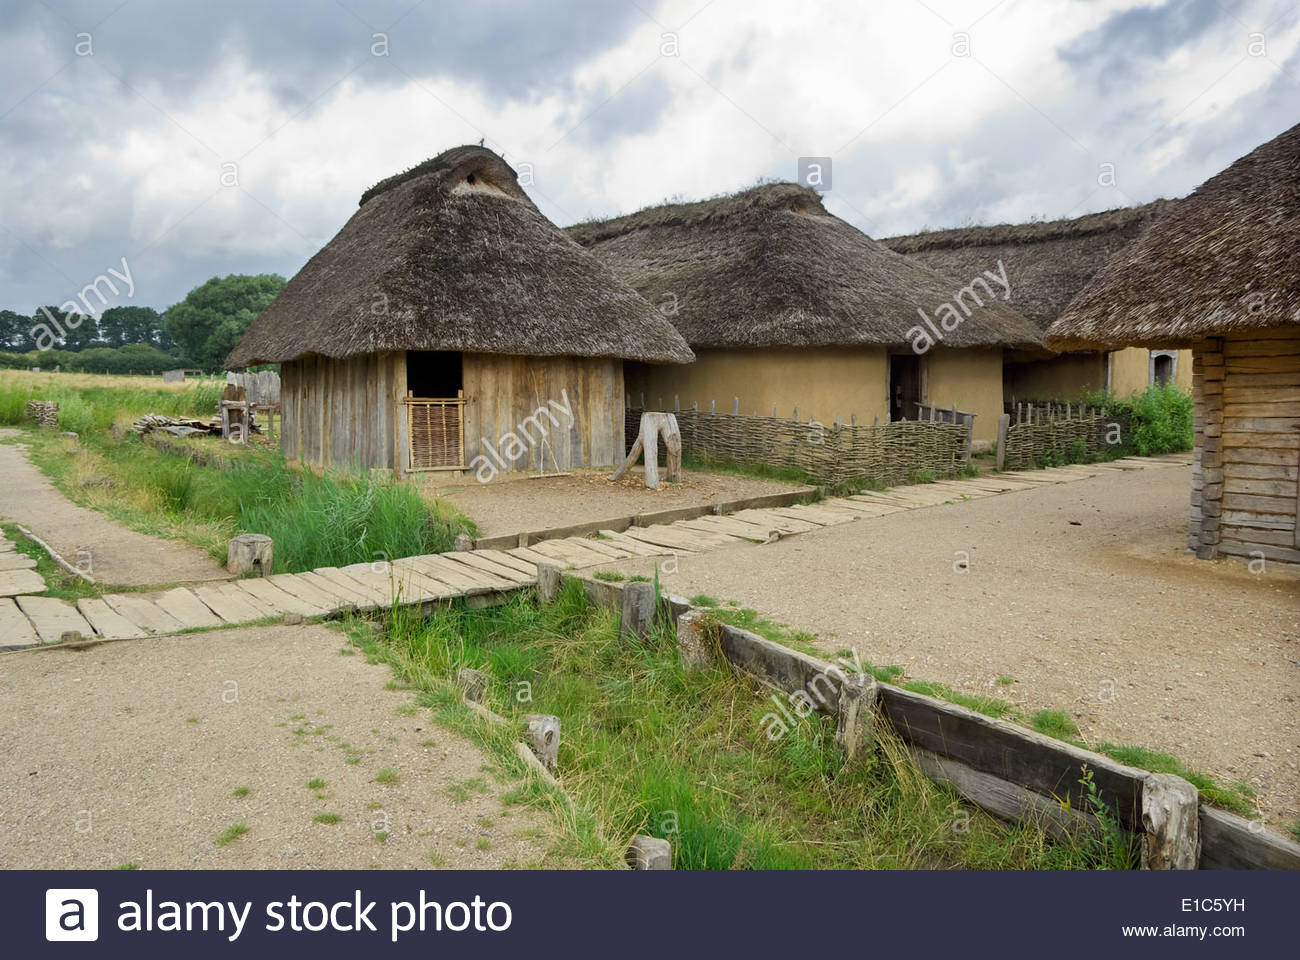 In its heyday, the Viking market town of Haithabu had about 1000 such thatch-roofed houses surrounded by a semicircular rampart.Vikings - Stock Image